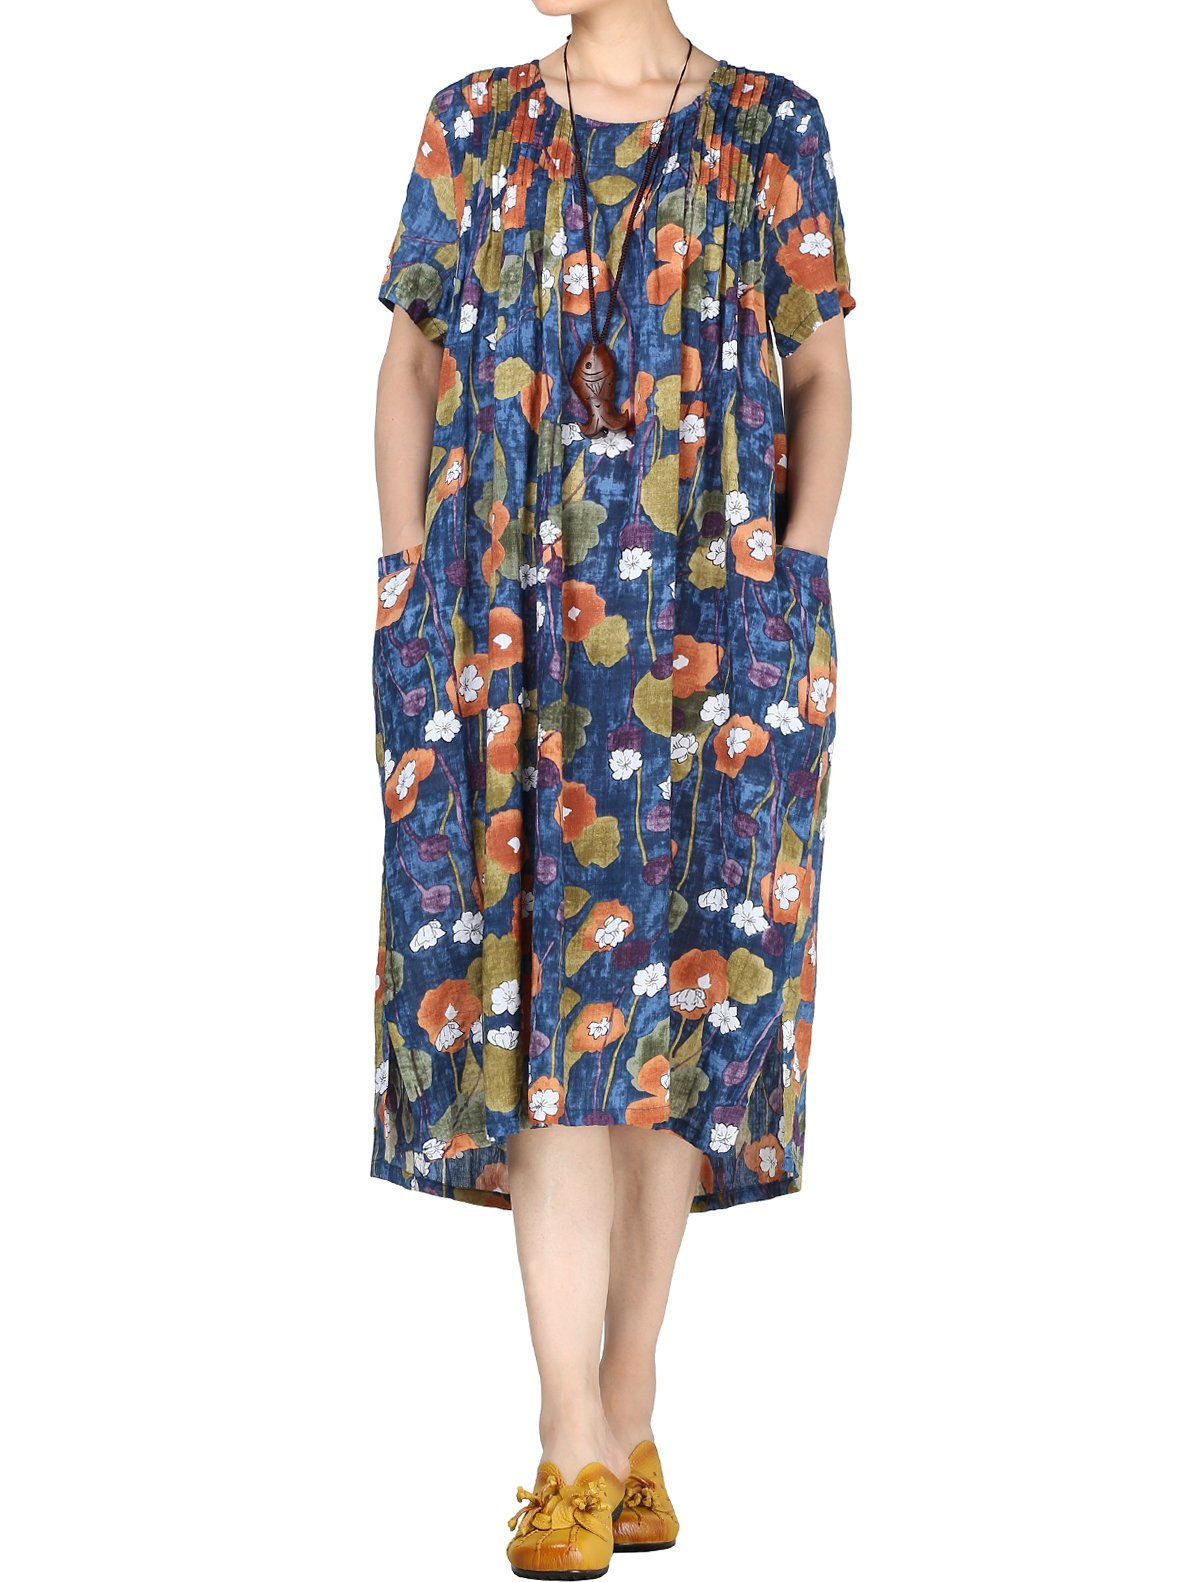 Mordenmiss Women's Summer Flowers Pleated Dress with Pockets M Blue